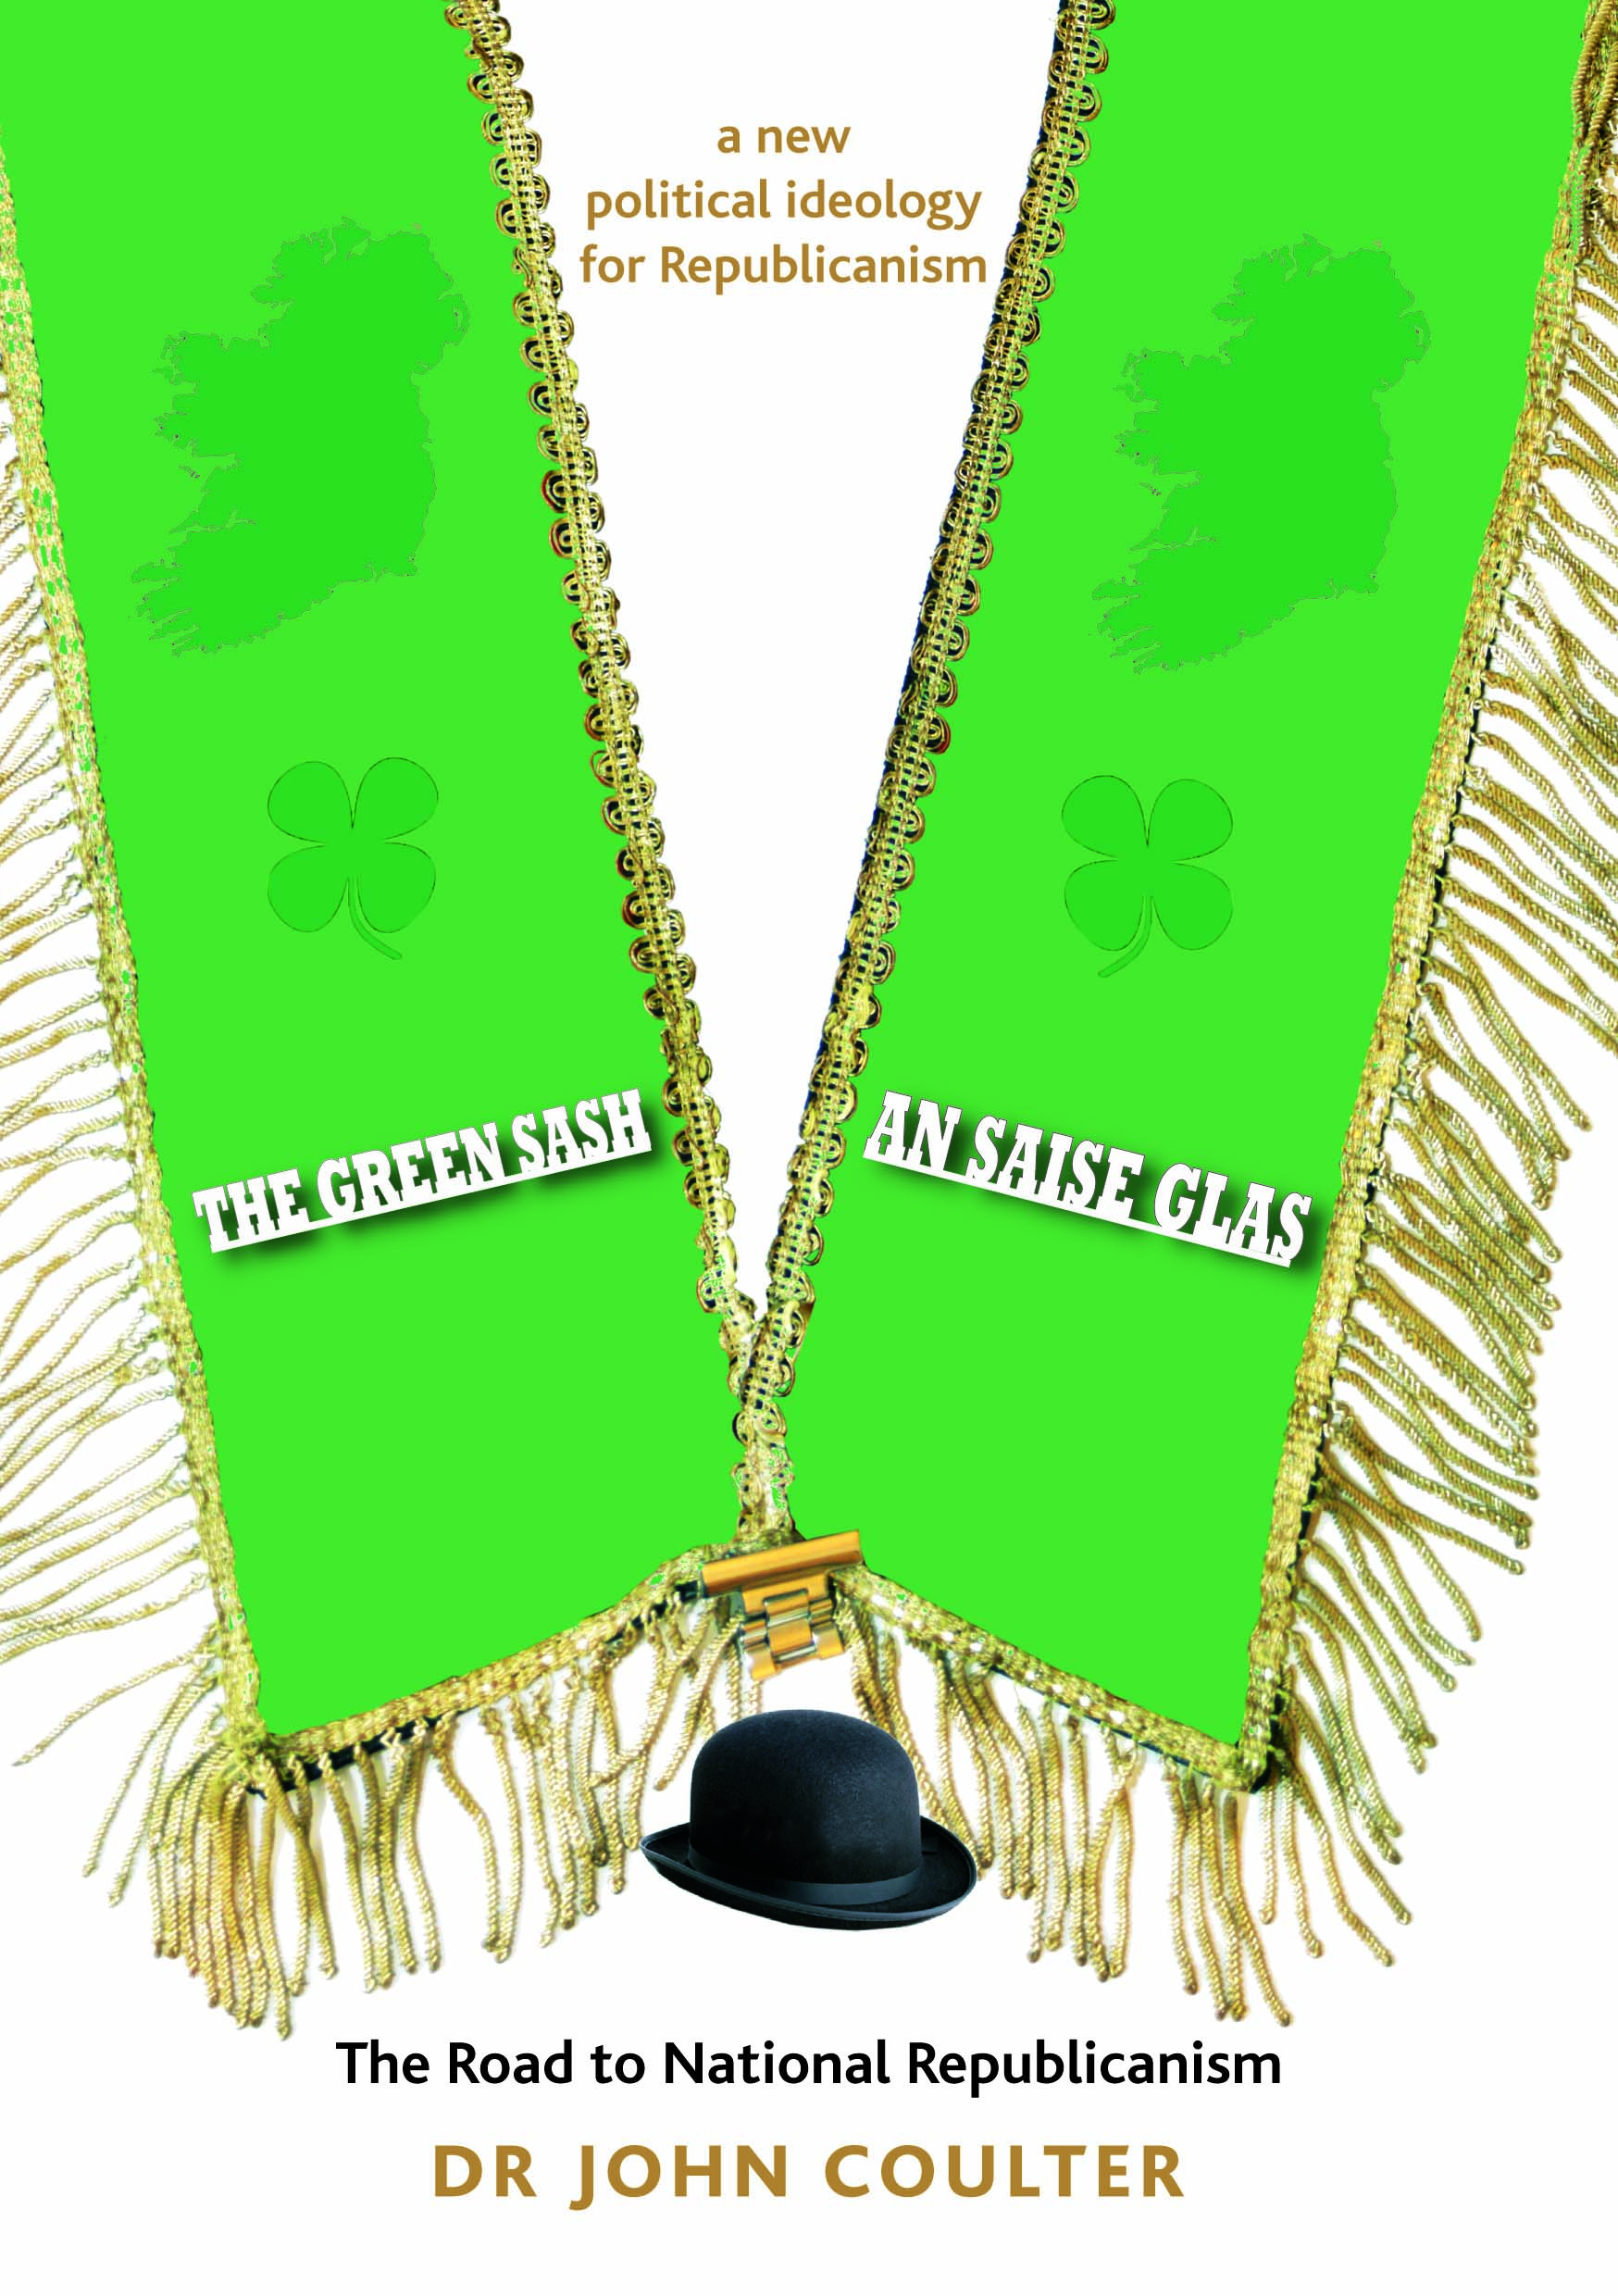 Political mind fields to boldly go where no blog has gone before dr john coulter is ireland columnist for tribune magazine and is author of the e book an saise glas the green sash the road to national republicanism fandeluxe Image collections